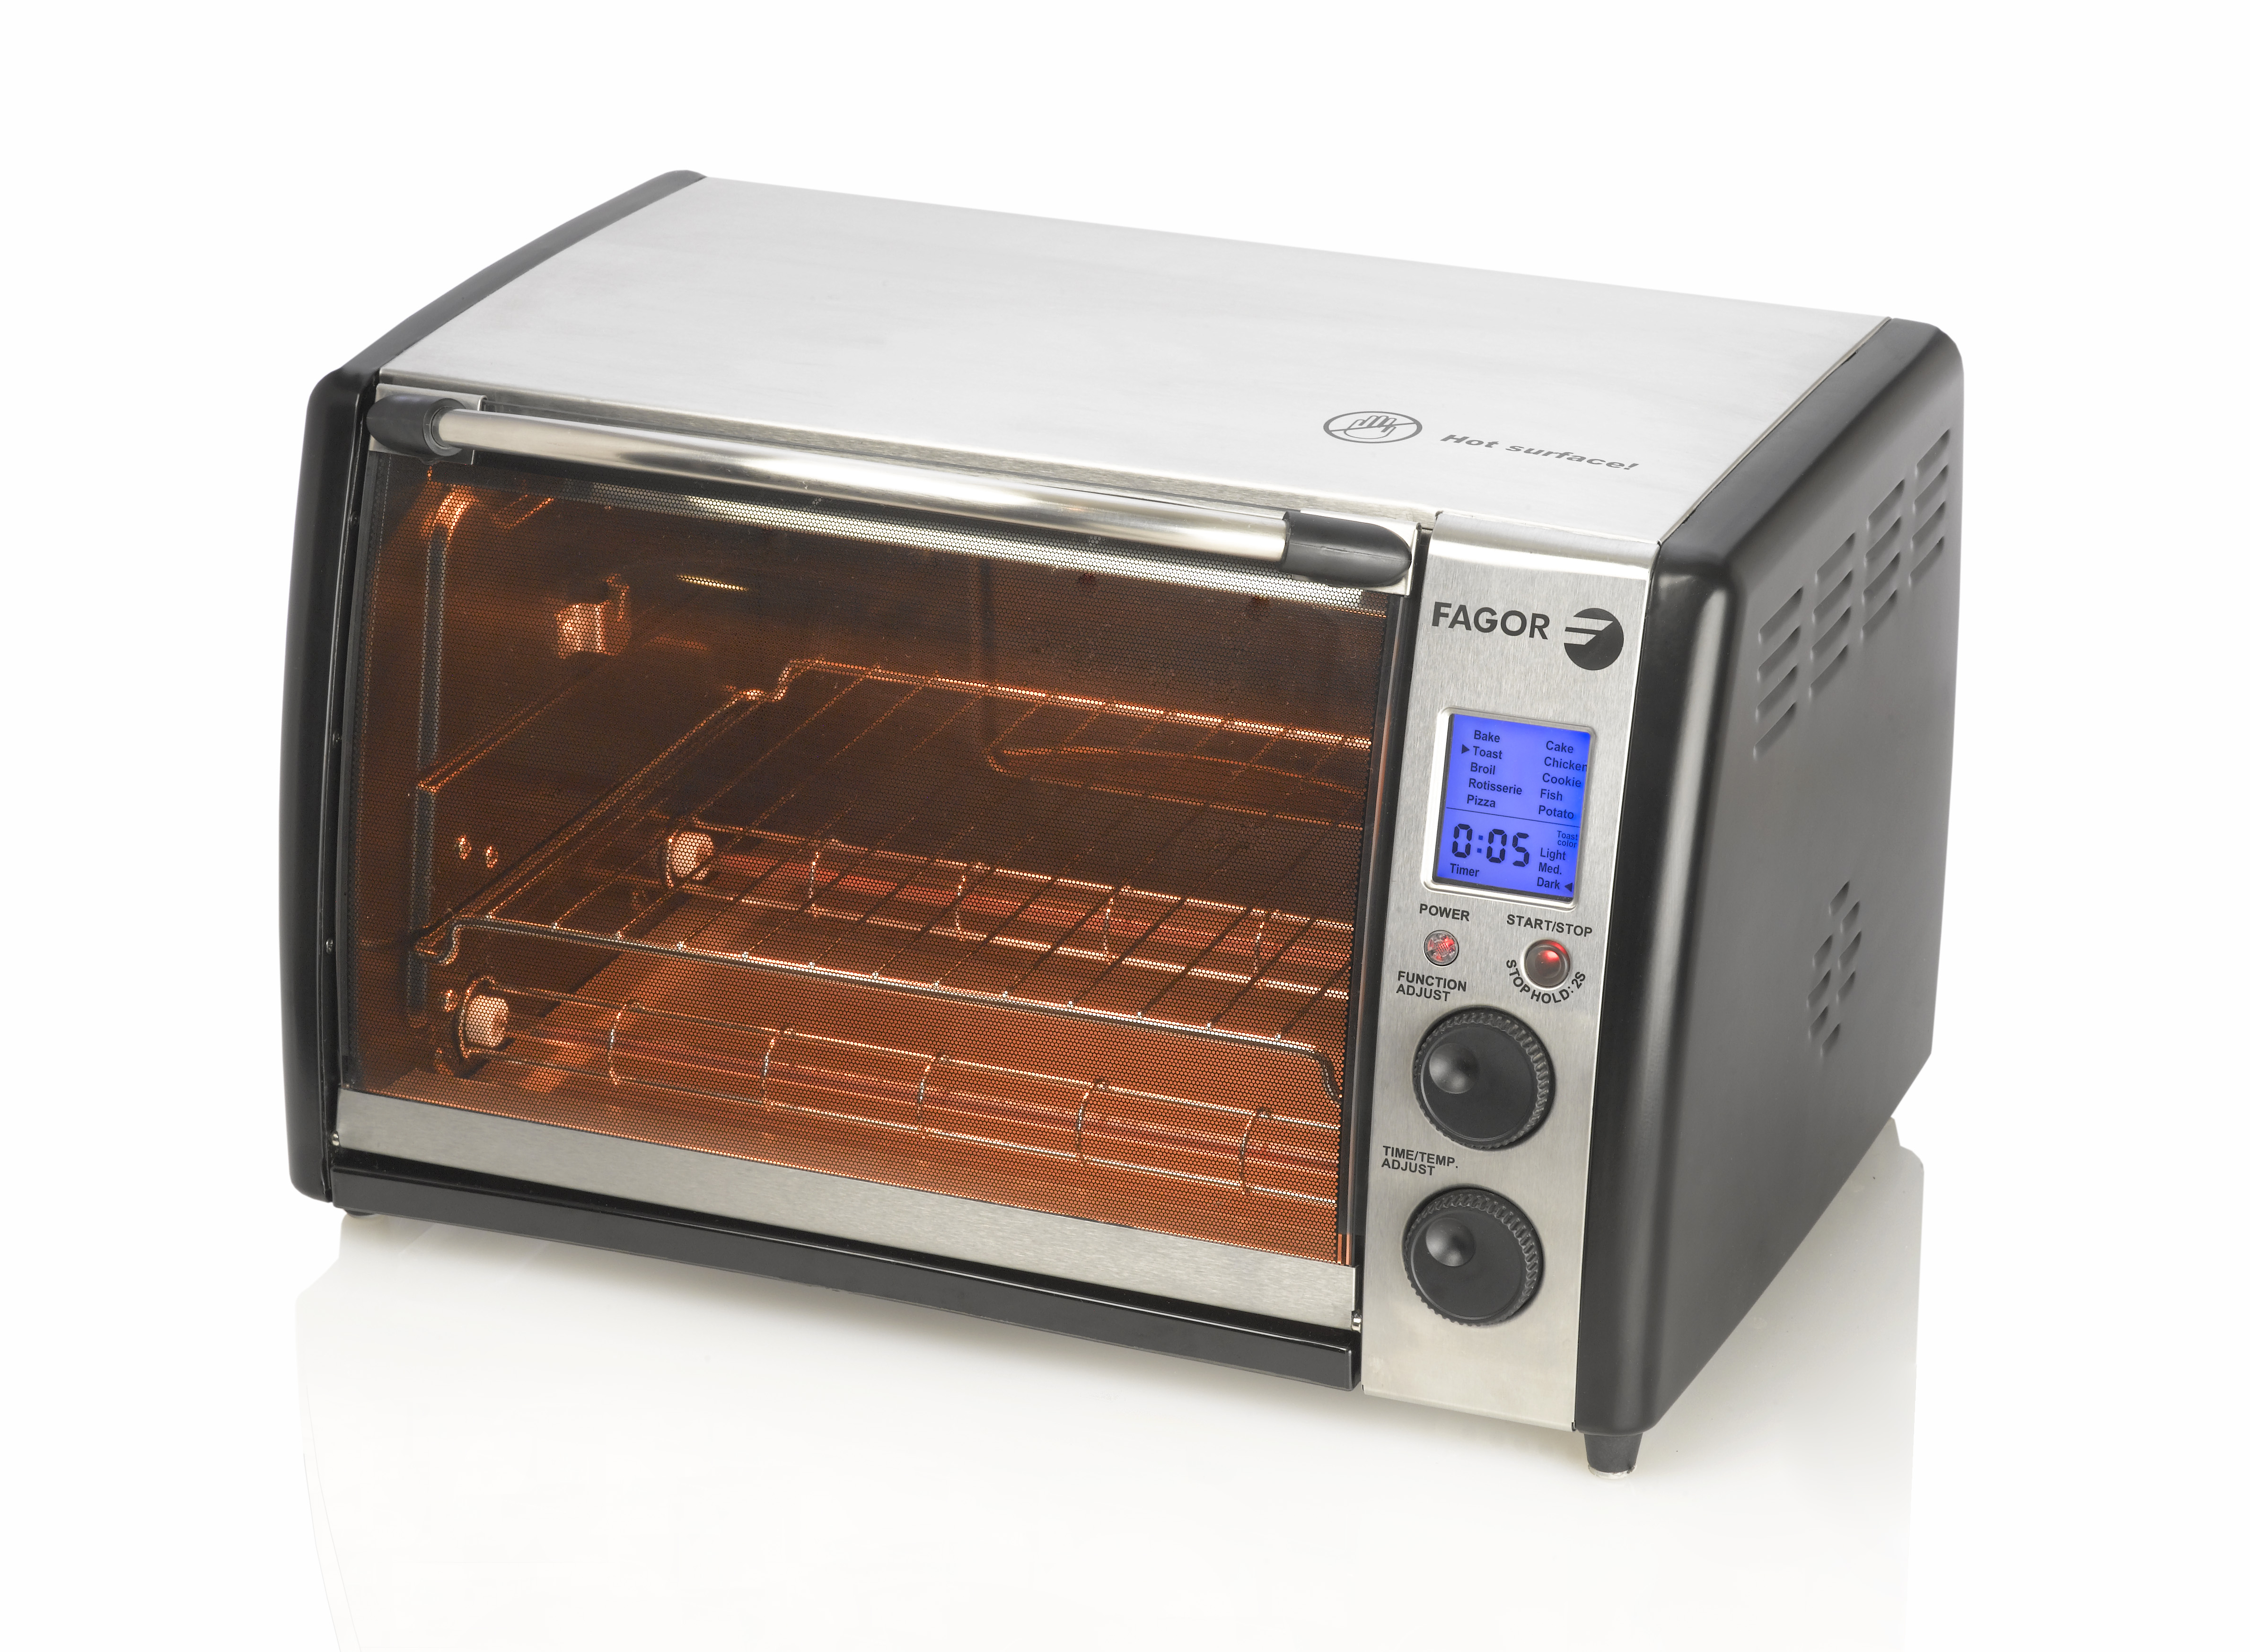 Fagor Dual Technology Digital Toaster Oven Giveaway